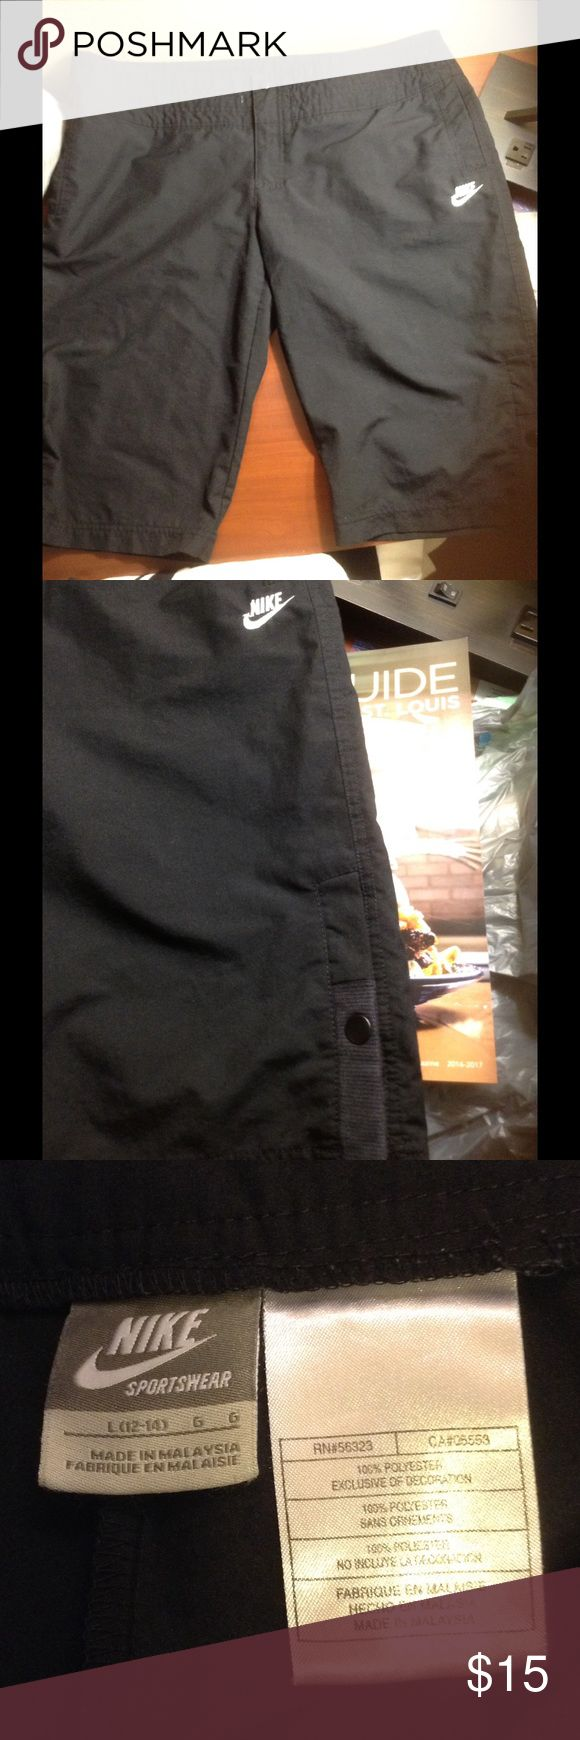 Woman's Nike shorts Real nice Nike sportswear shorts, size 12-14, no draw string Nike Shorts